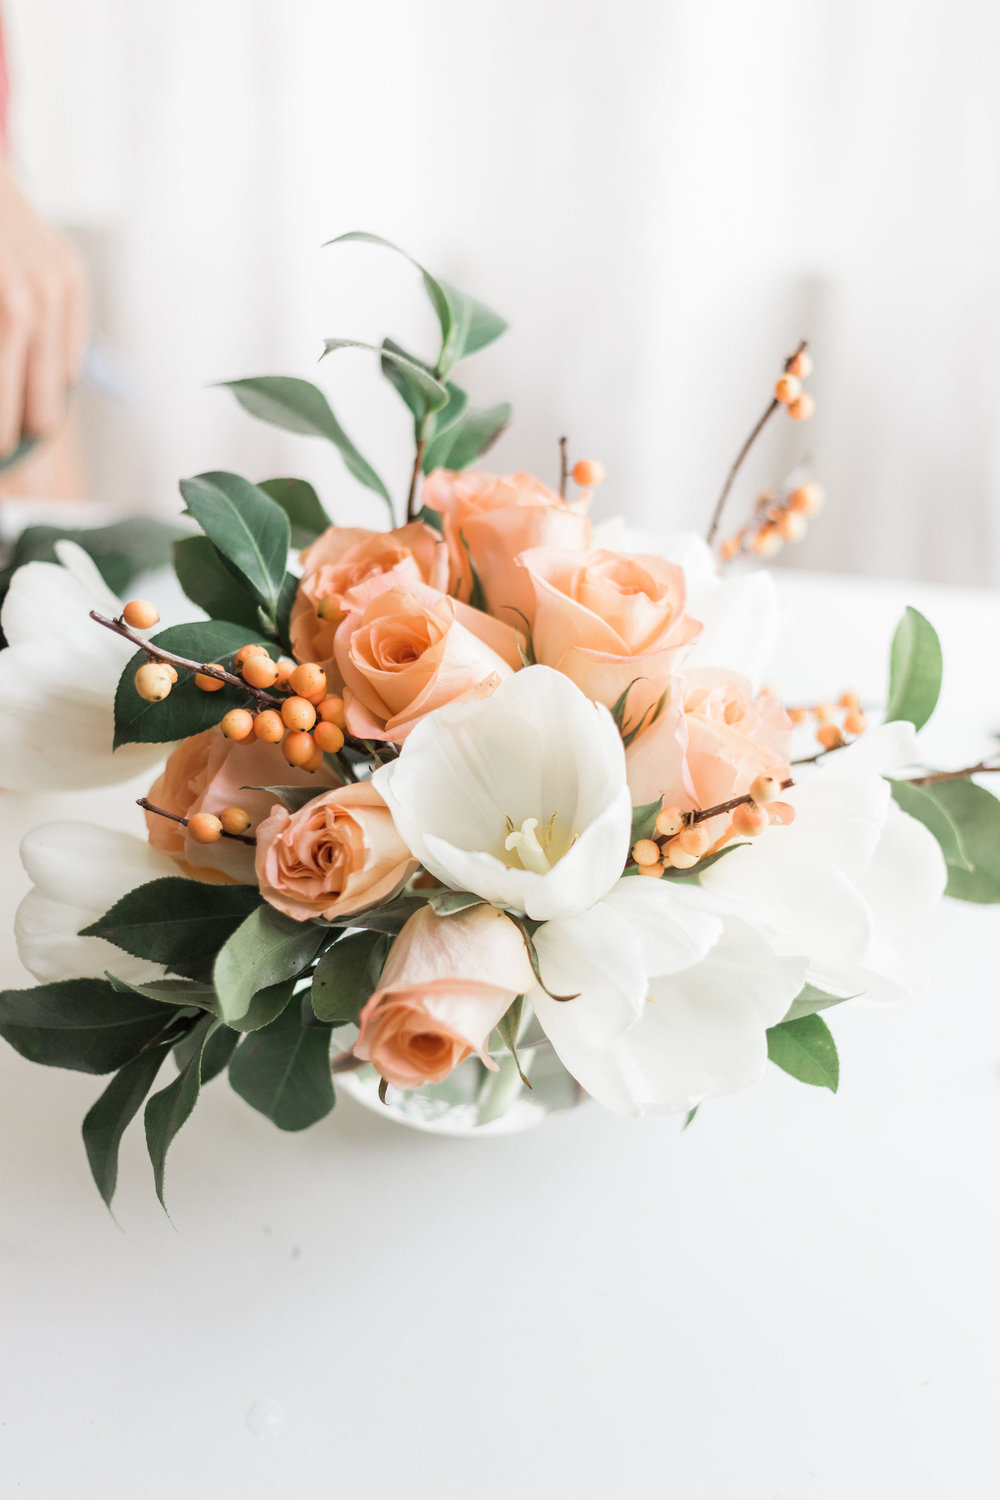 White and peach holiday floral arrangement | A Fabulous Fete